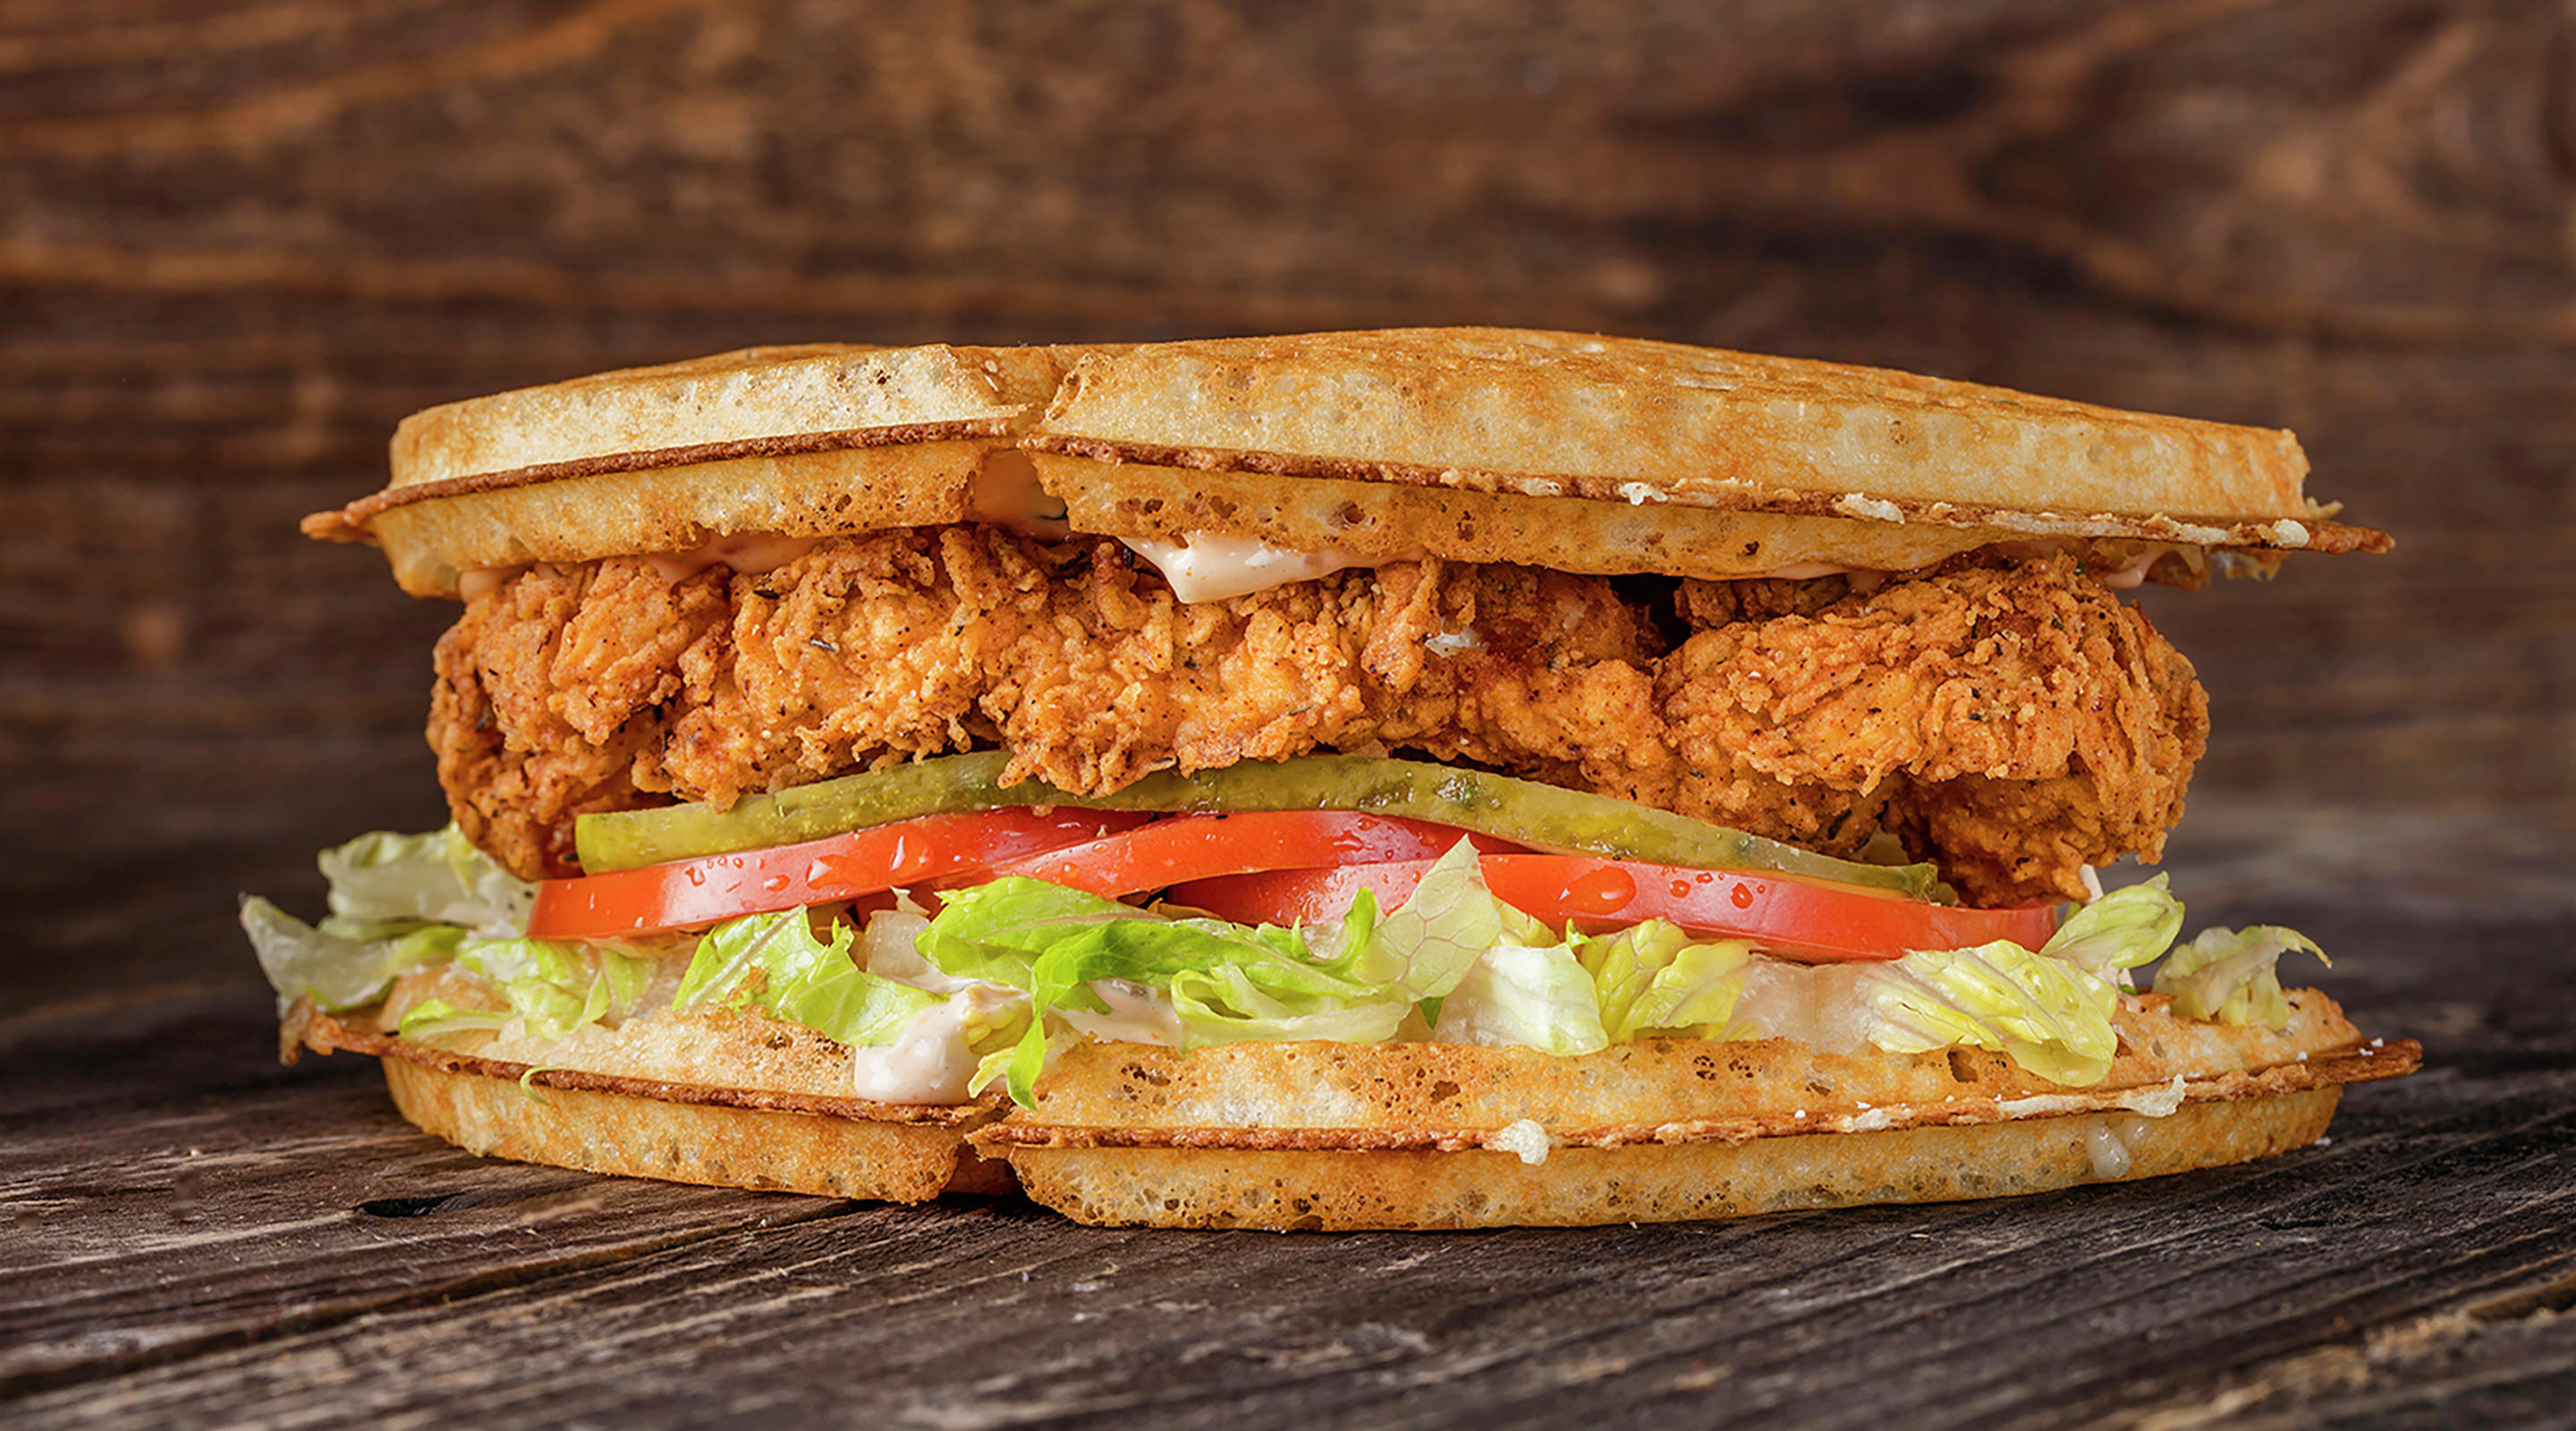 Bruxie Crispy Chicken Sandwich image.